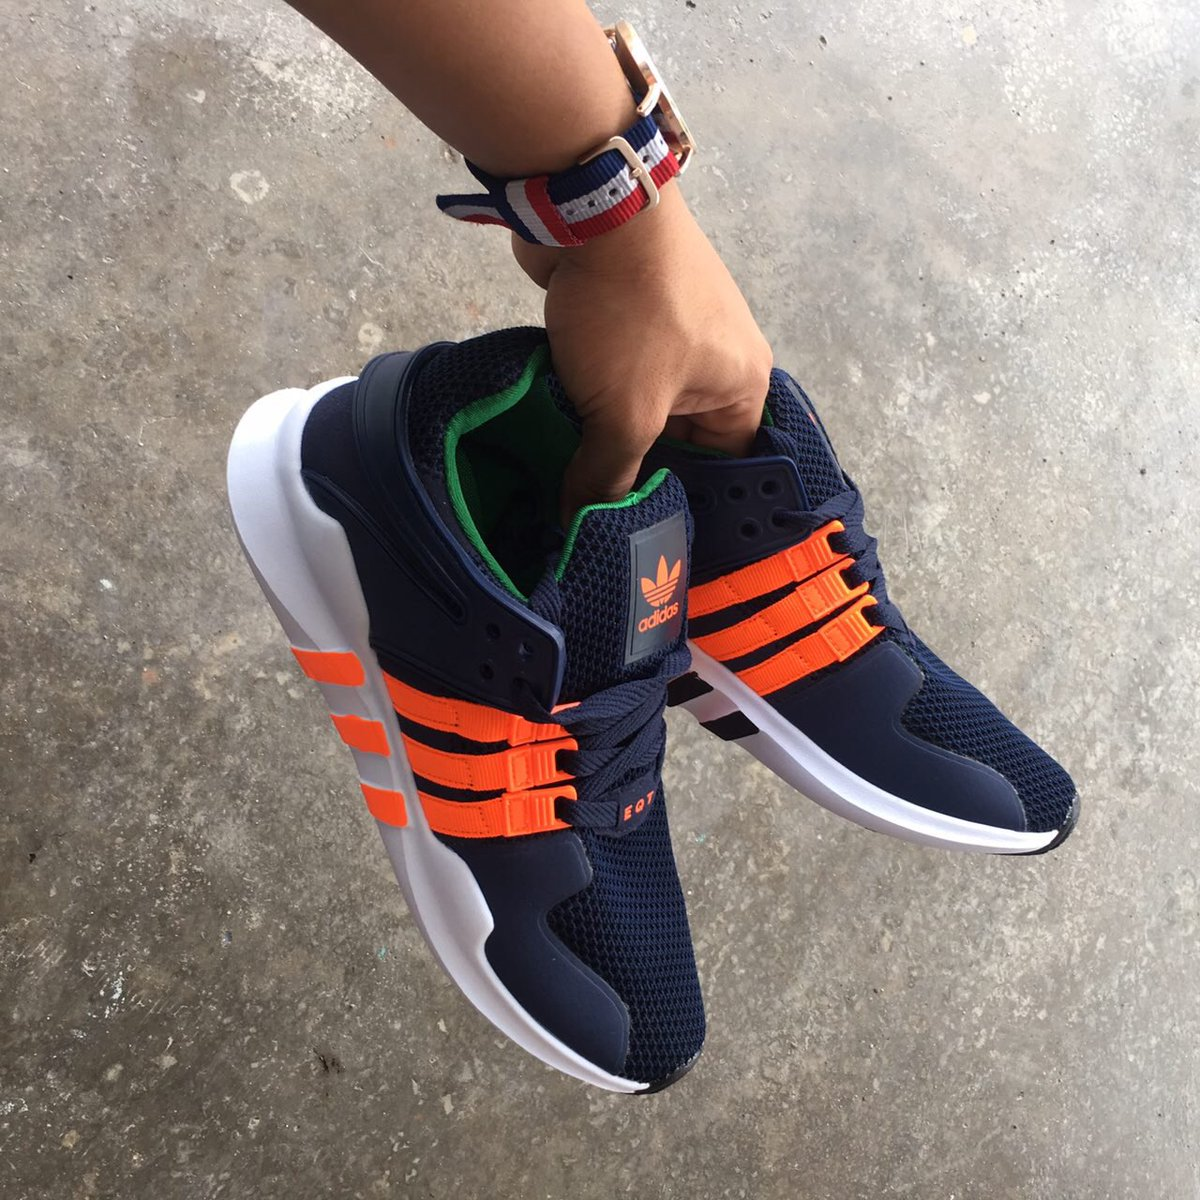 86d8471e1cb1ab Adidas EQT Navy Blue Size  - 41-45 Euro Harga Offer  - RM 90 Only SM (inc  postage) RM 95 Only SS (inc postage) WhatsApp   0111-621  8182pic.twitter.com  ...